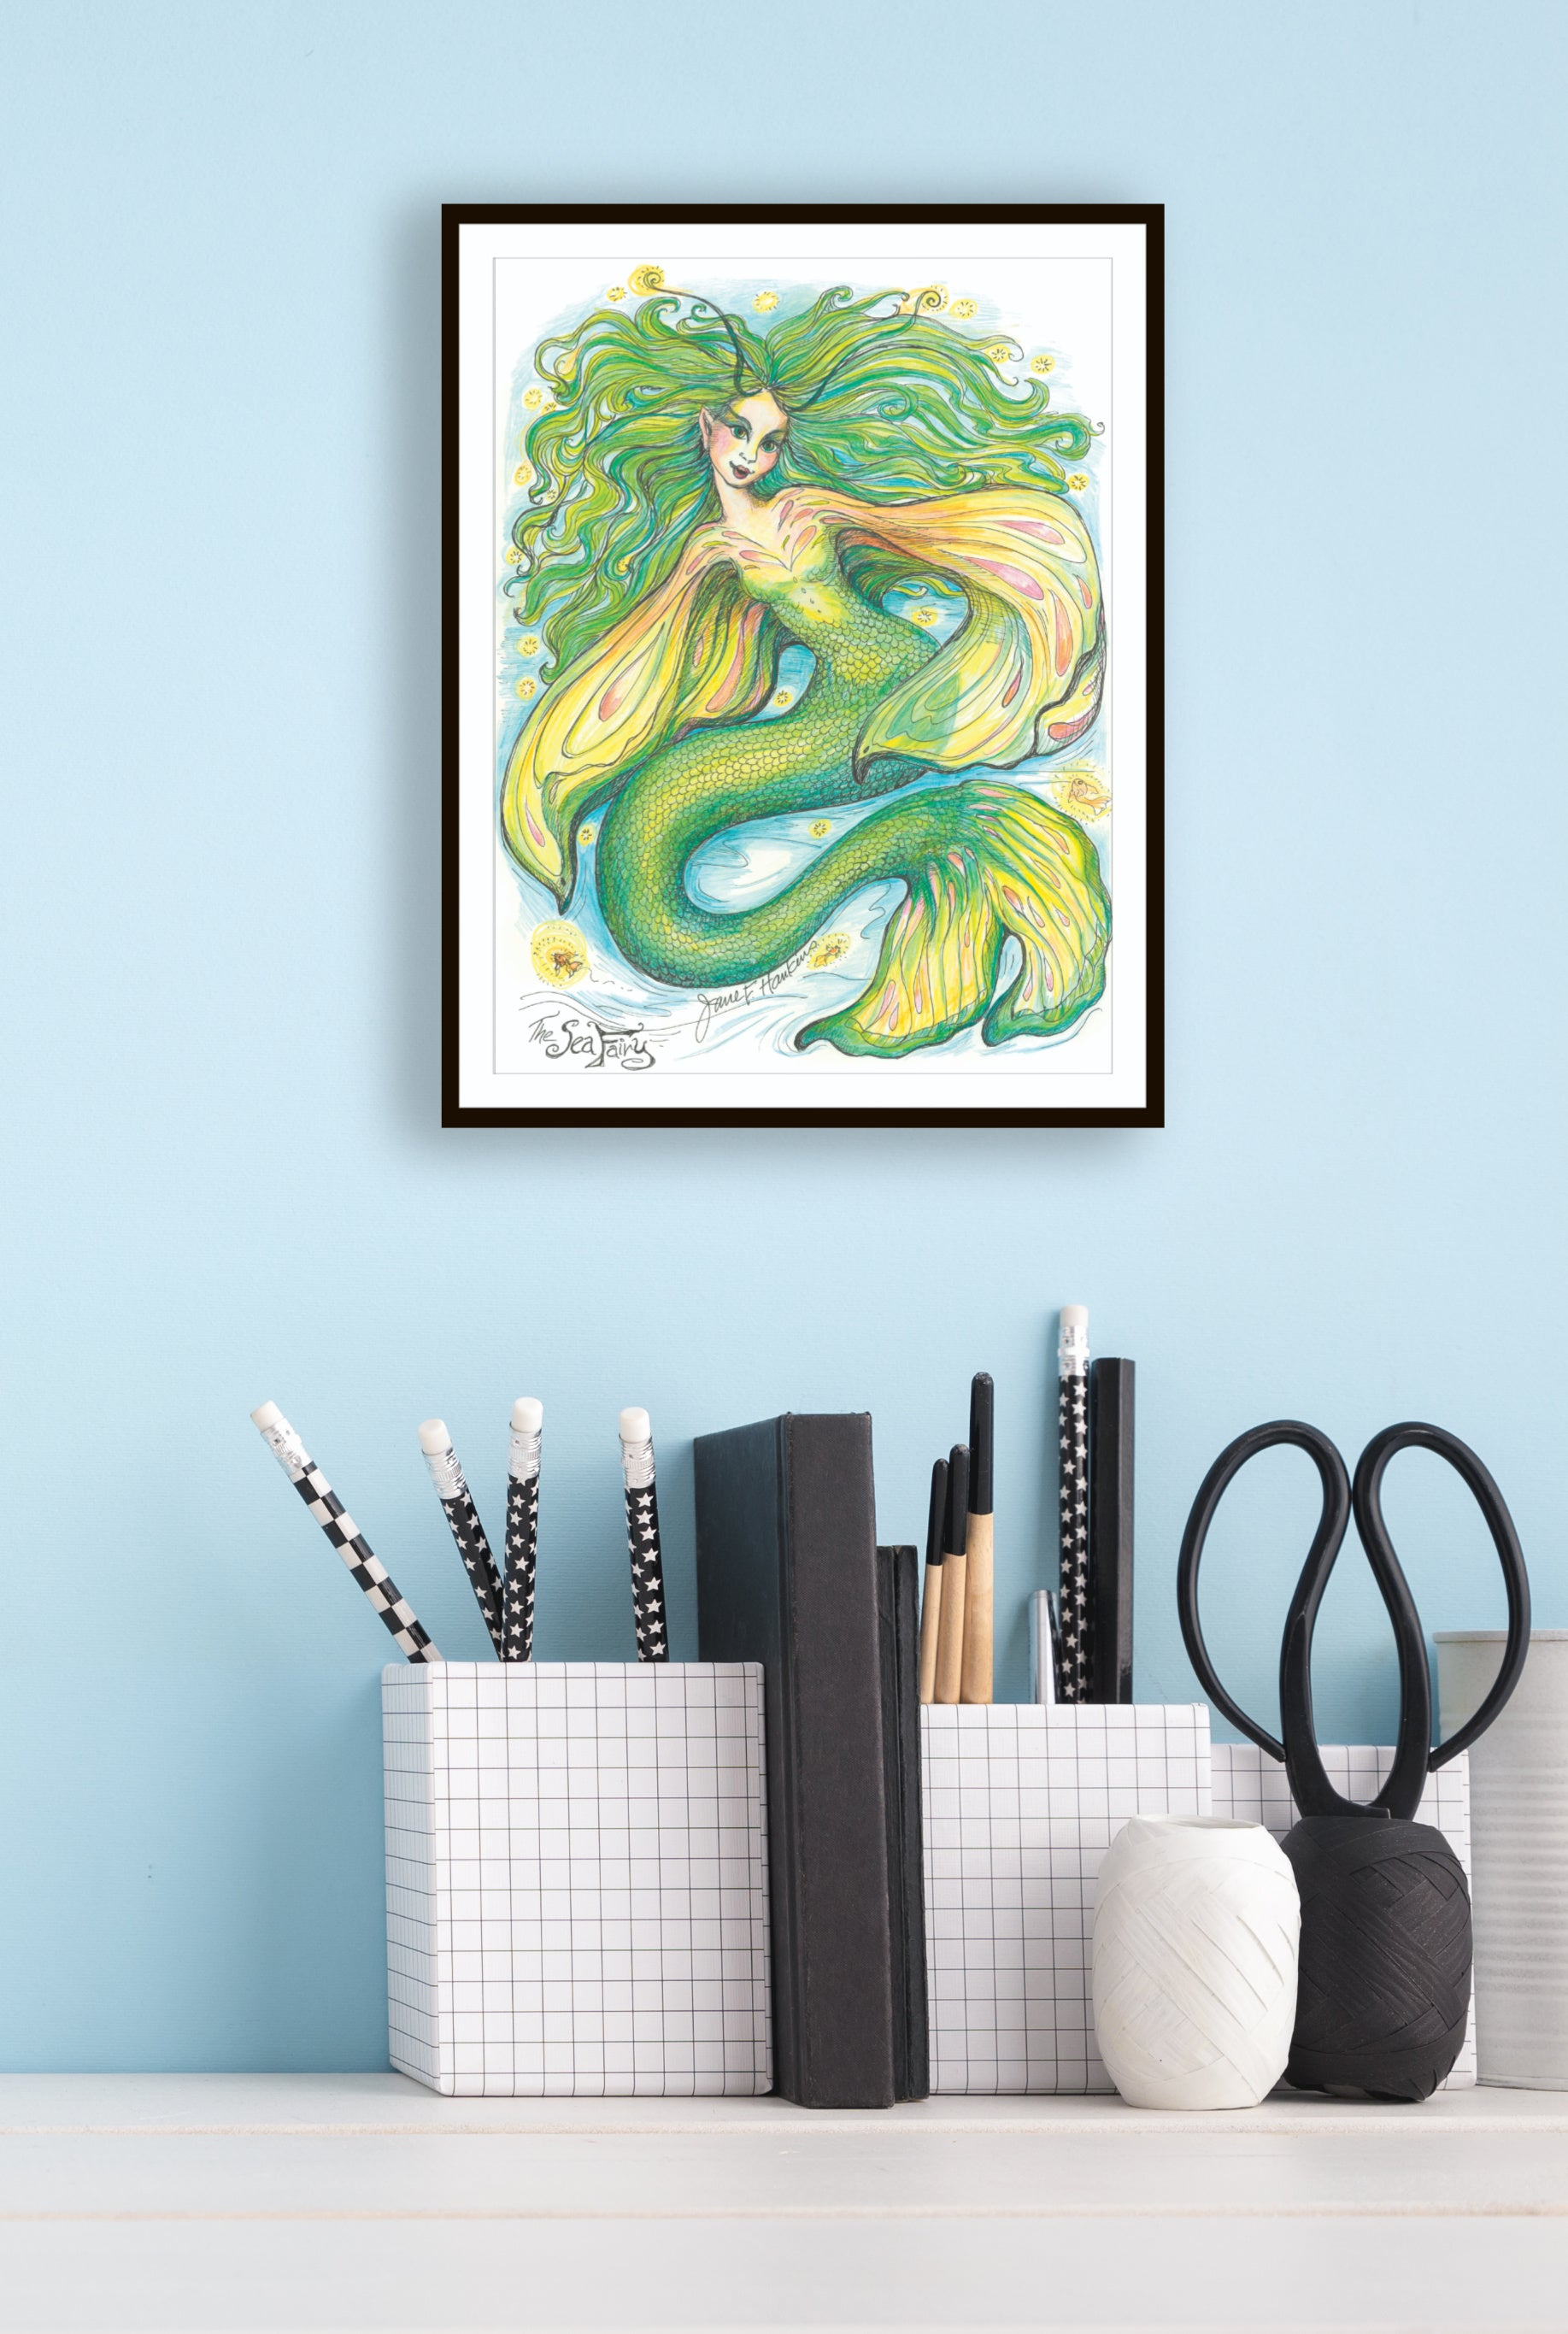 Print of The Sea Fairy by Jane F. Hankins